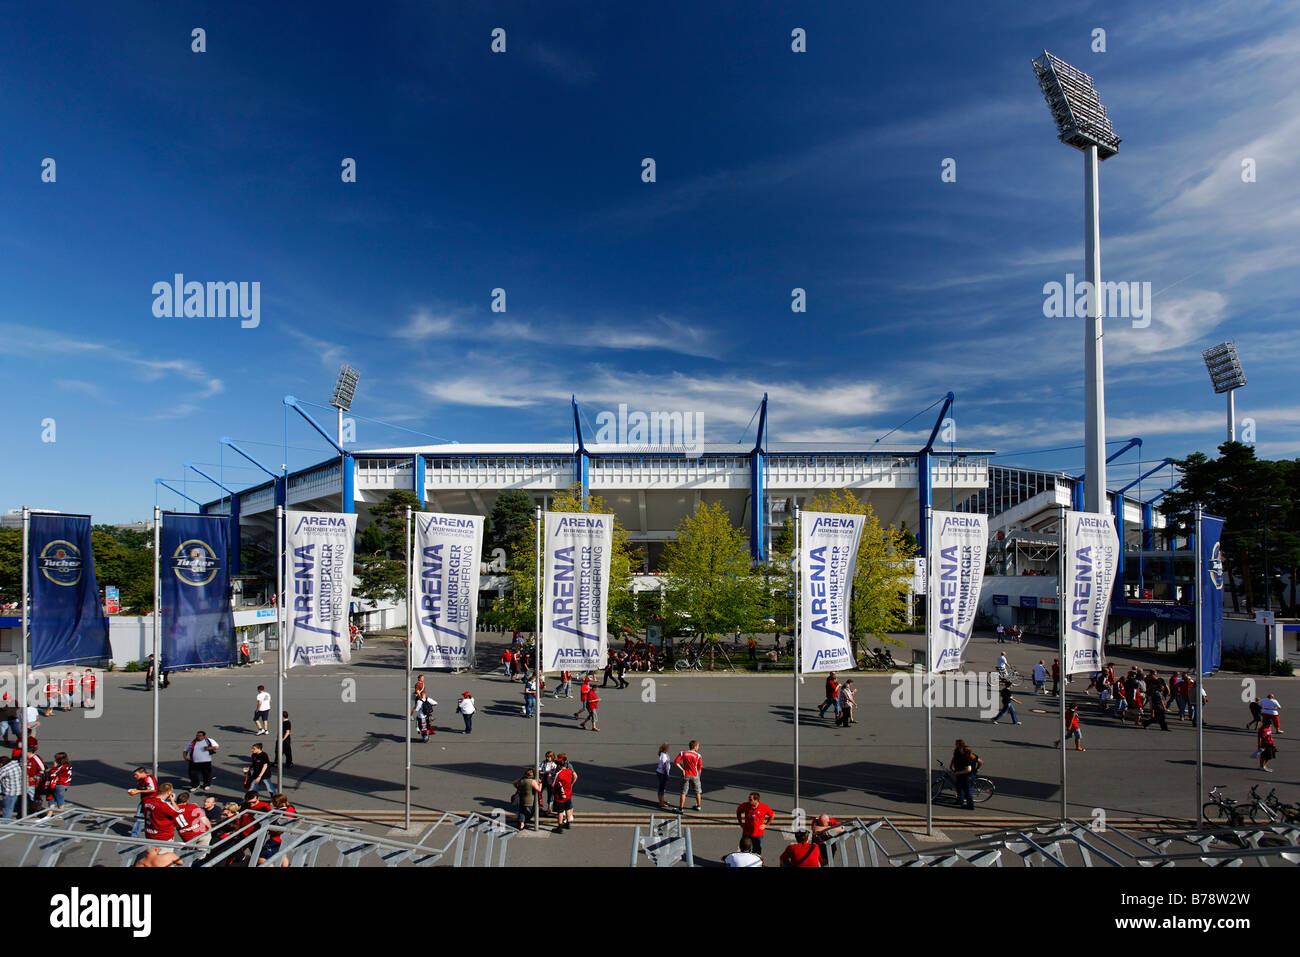 Frankenstadion, Easy Credit Stadium after soccer match, flags, light towers, audience, Nuremberg, Middle Franconia, - Stock Image